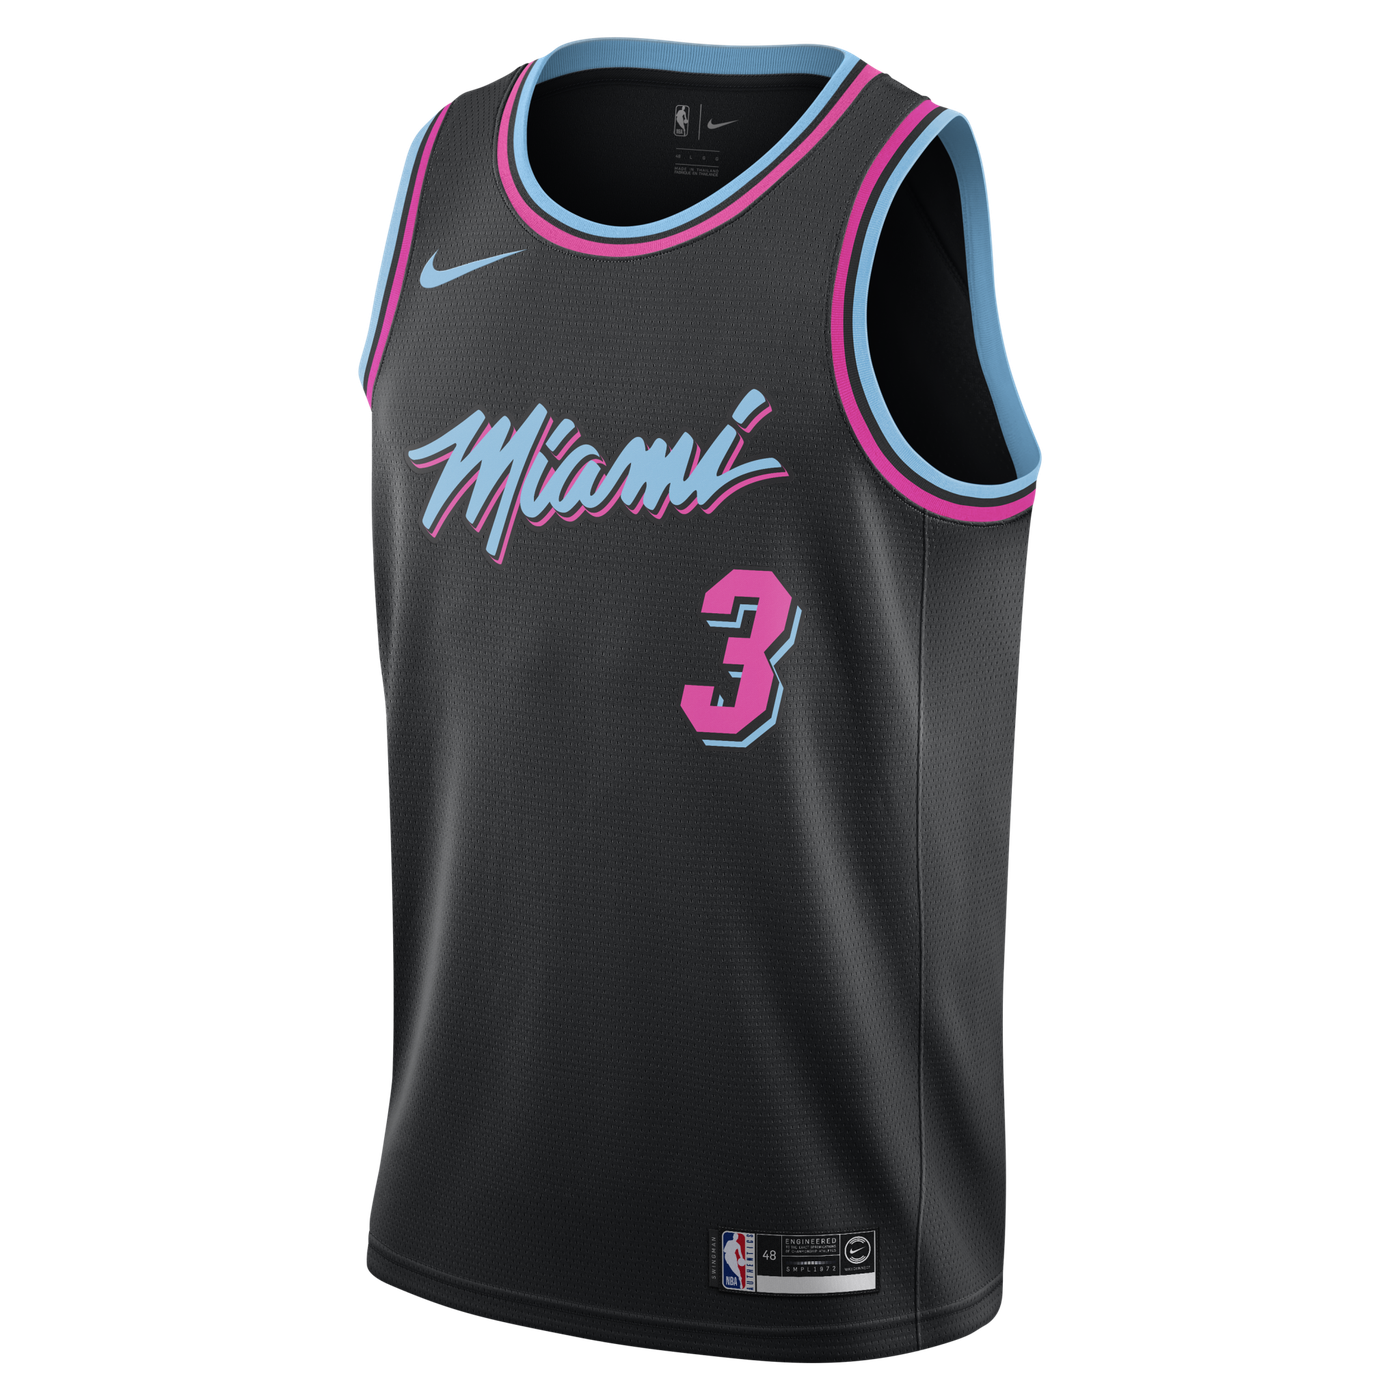 d781eb76c3f Here s where you can find the NBA City Edition jerseys